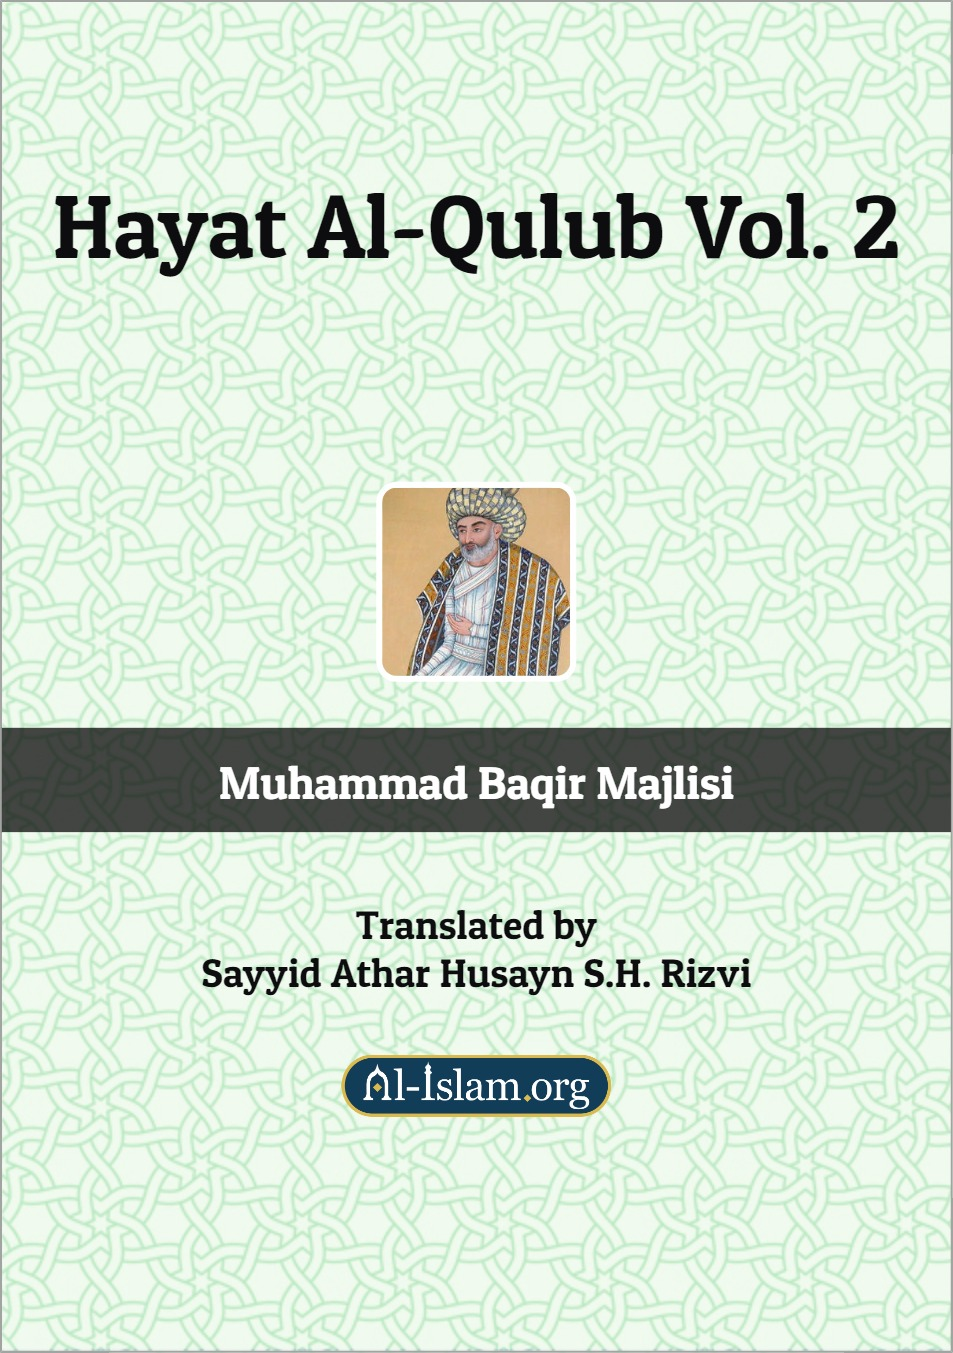 ABOUT ISLAMIC SOURCES